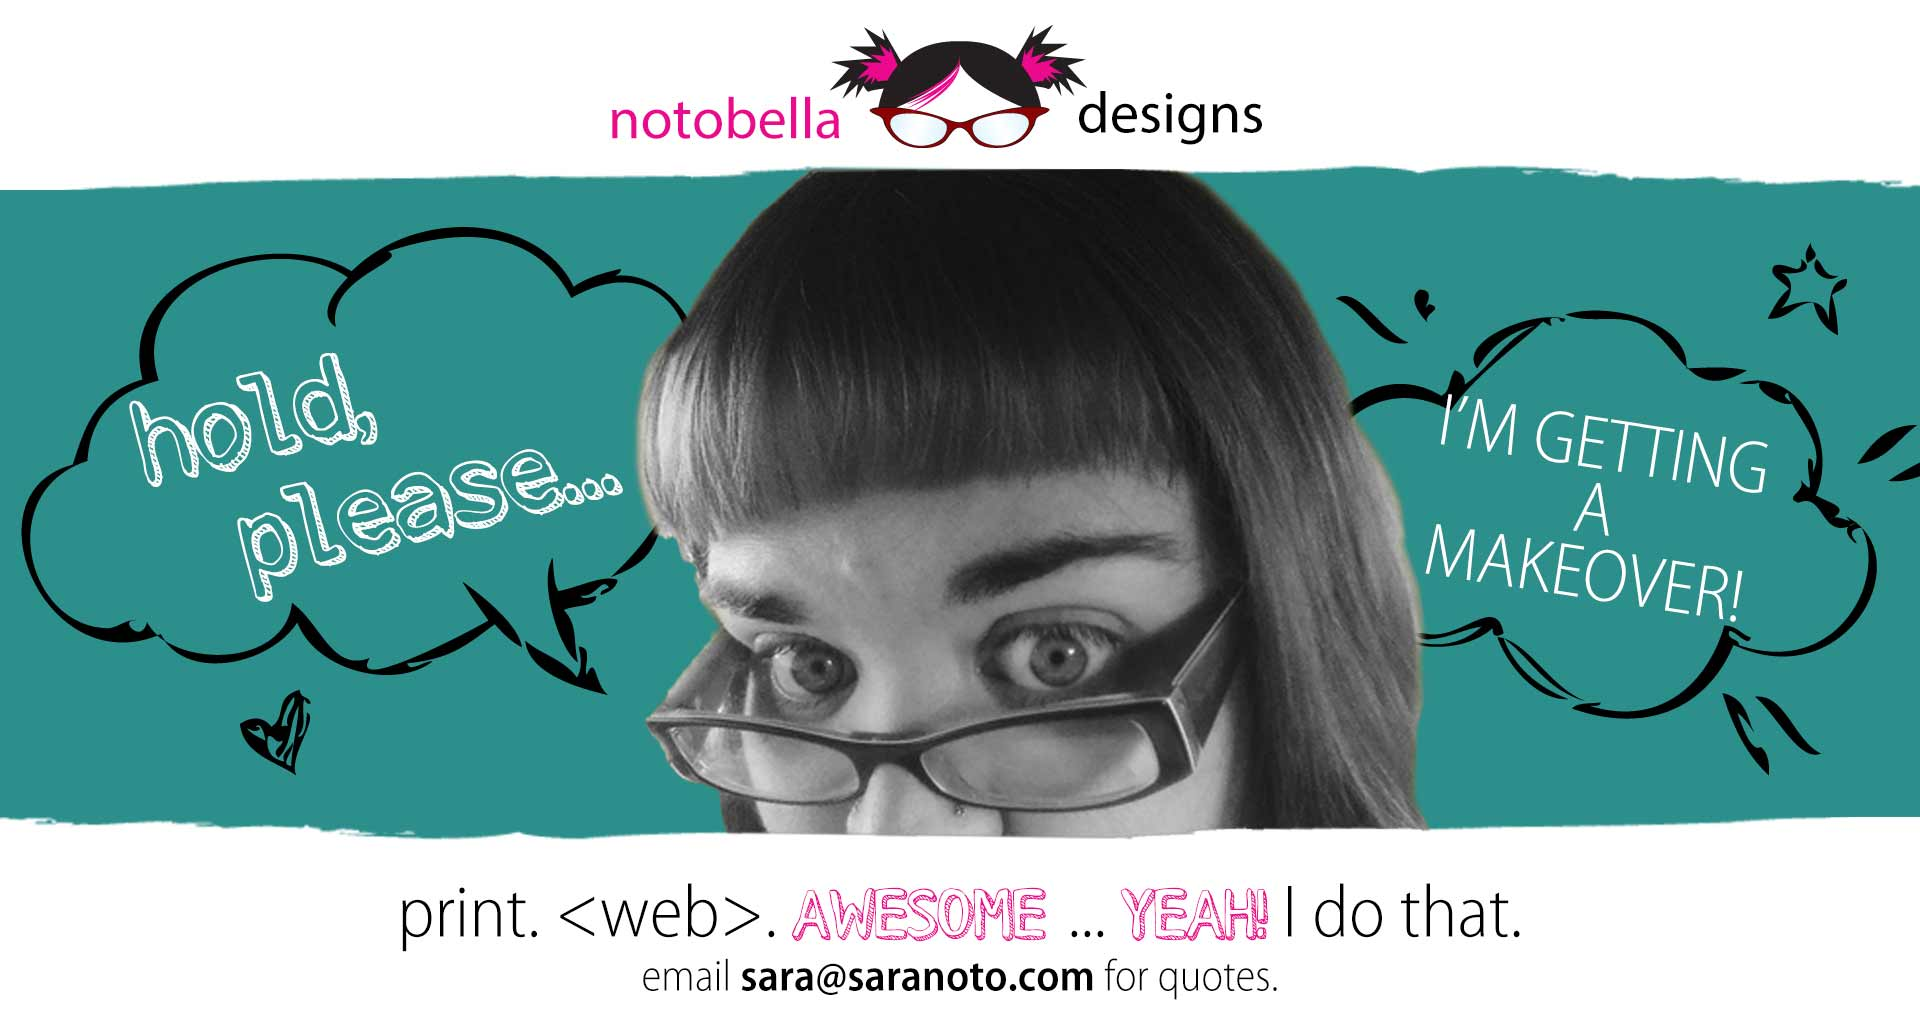 hold, please...i'm getting a make over! print. web. awesome. yeah, I do that. email sara@saranoto.com for a quote.